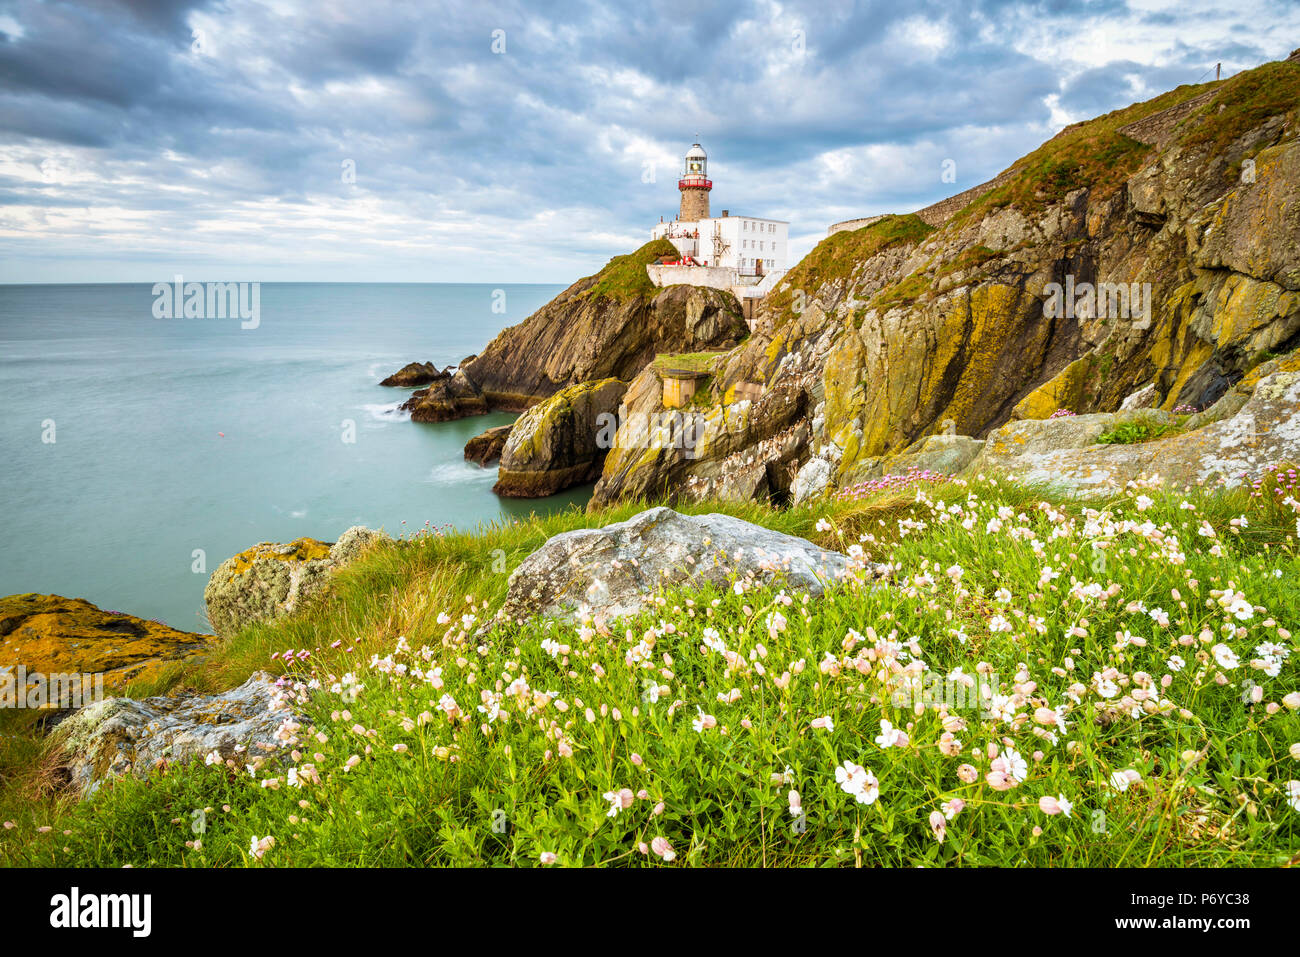 Baily lighthouse, Howth, County Dublin, Ireland, Europe. - Stock Image